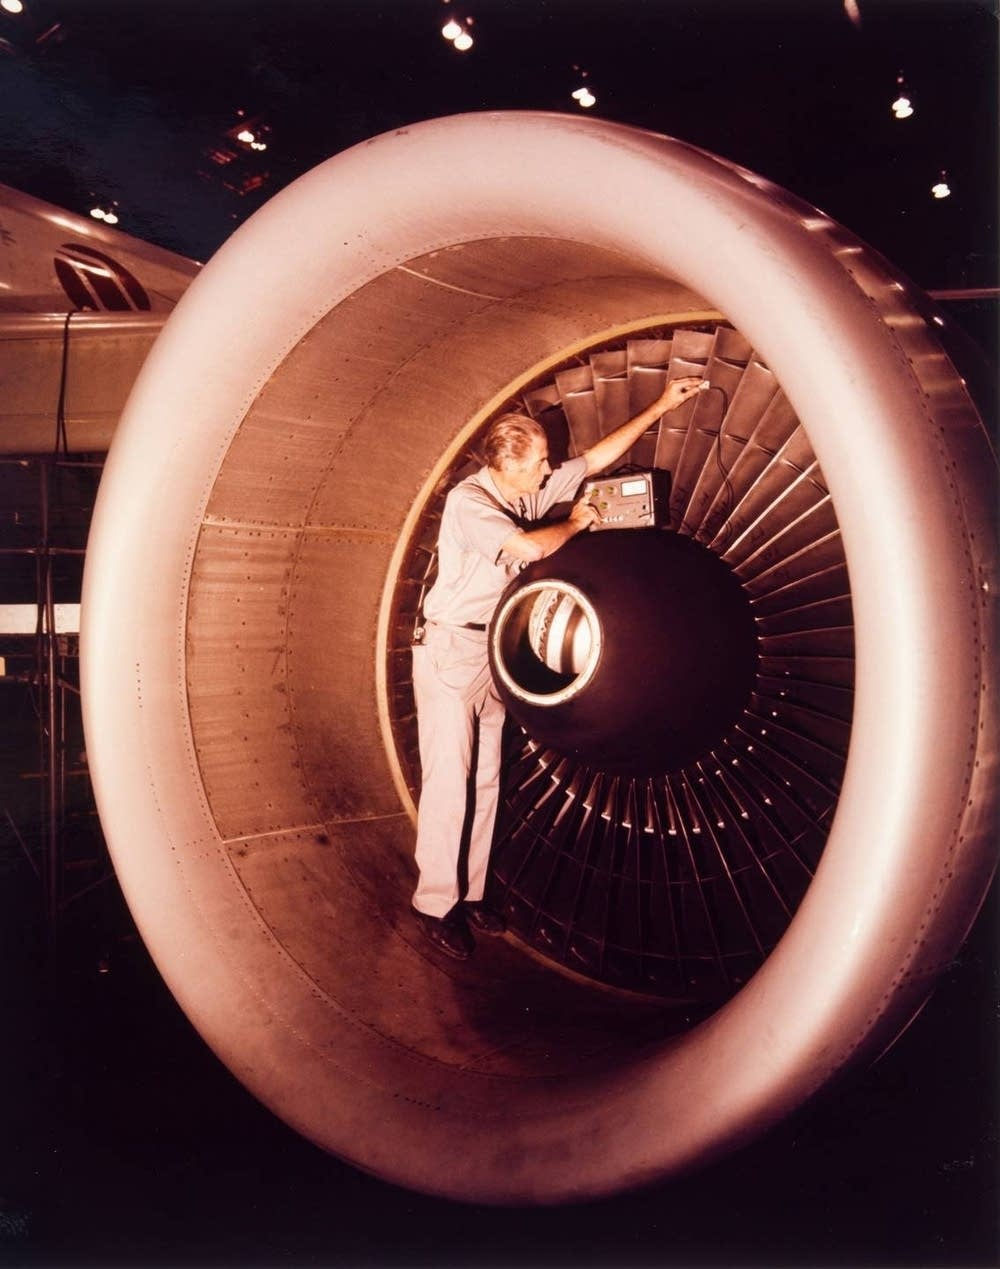 Inspecting jet engines